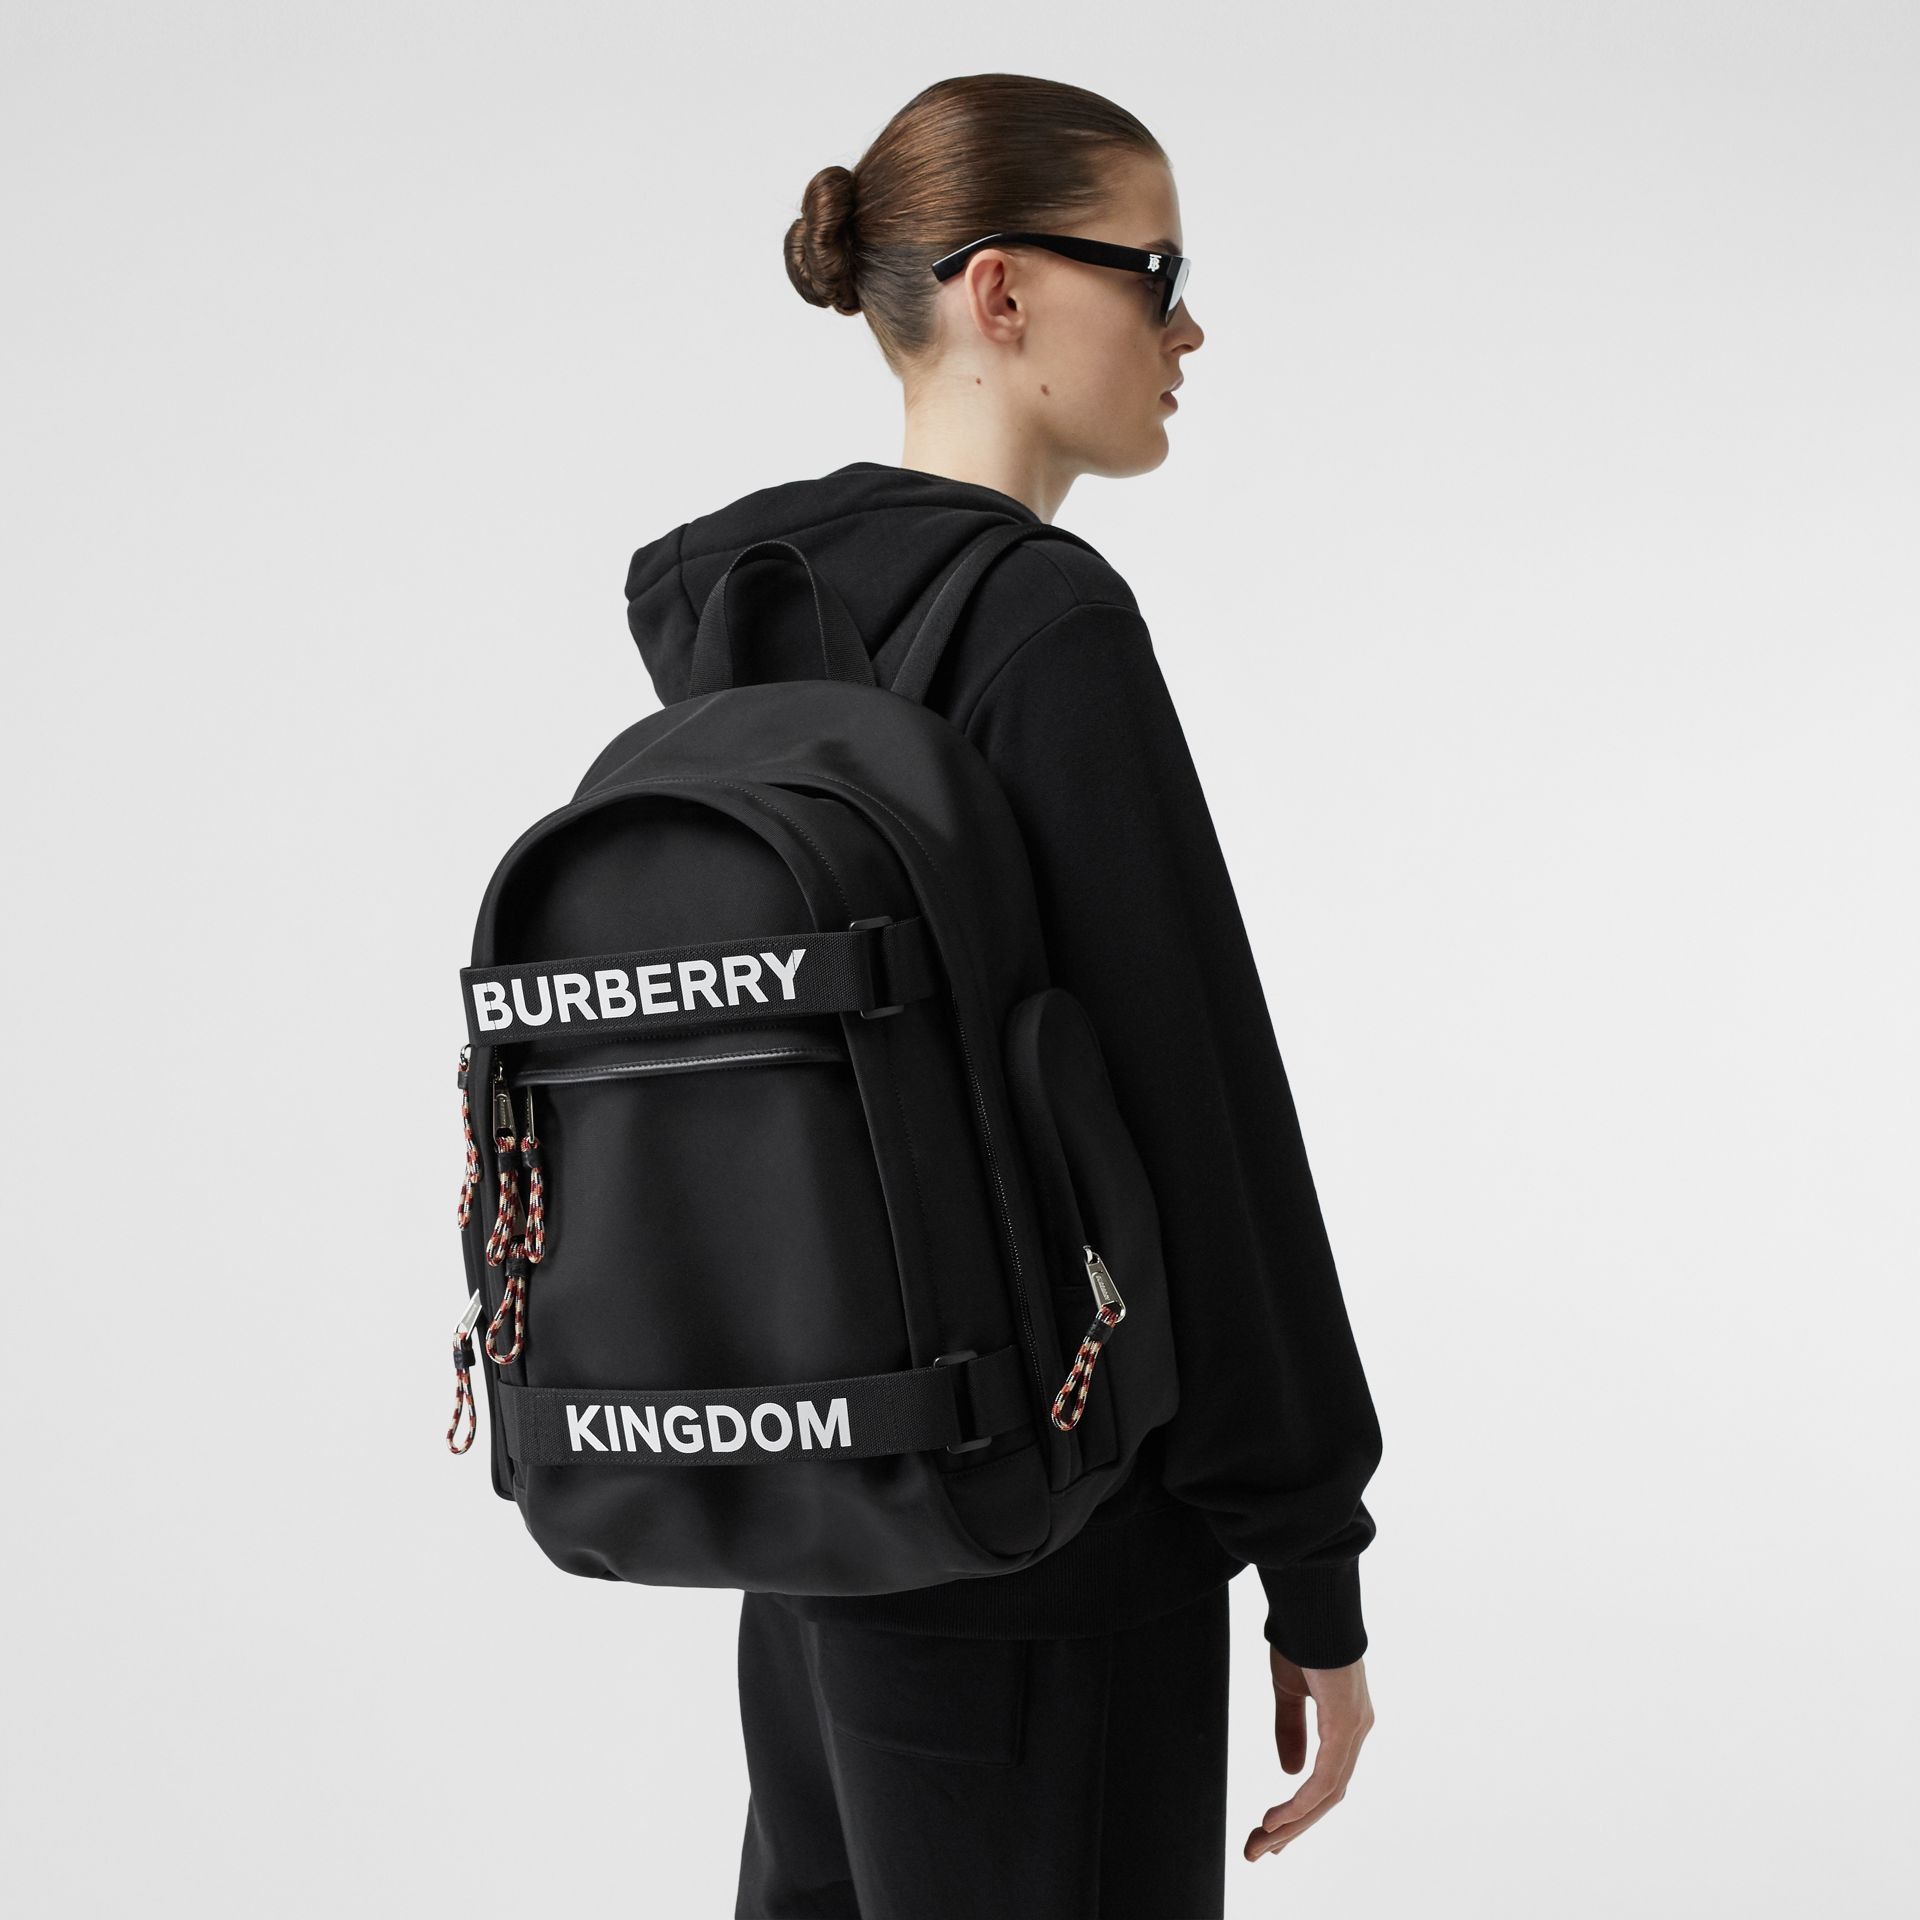 Large Logo and Kingdom Detail Nevis Backpack in Black/white | Burberry Hong Kong S.A.R - gallery image 2